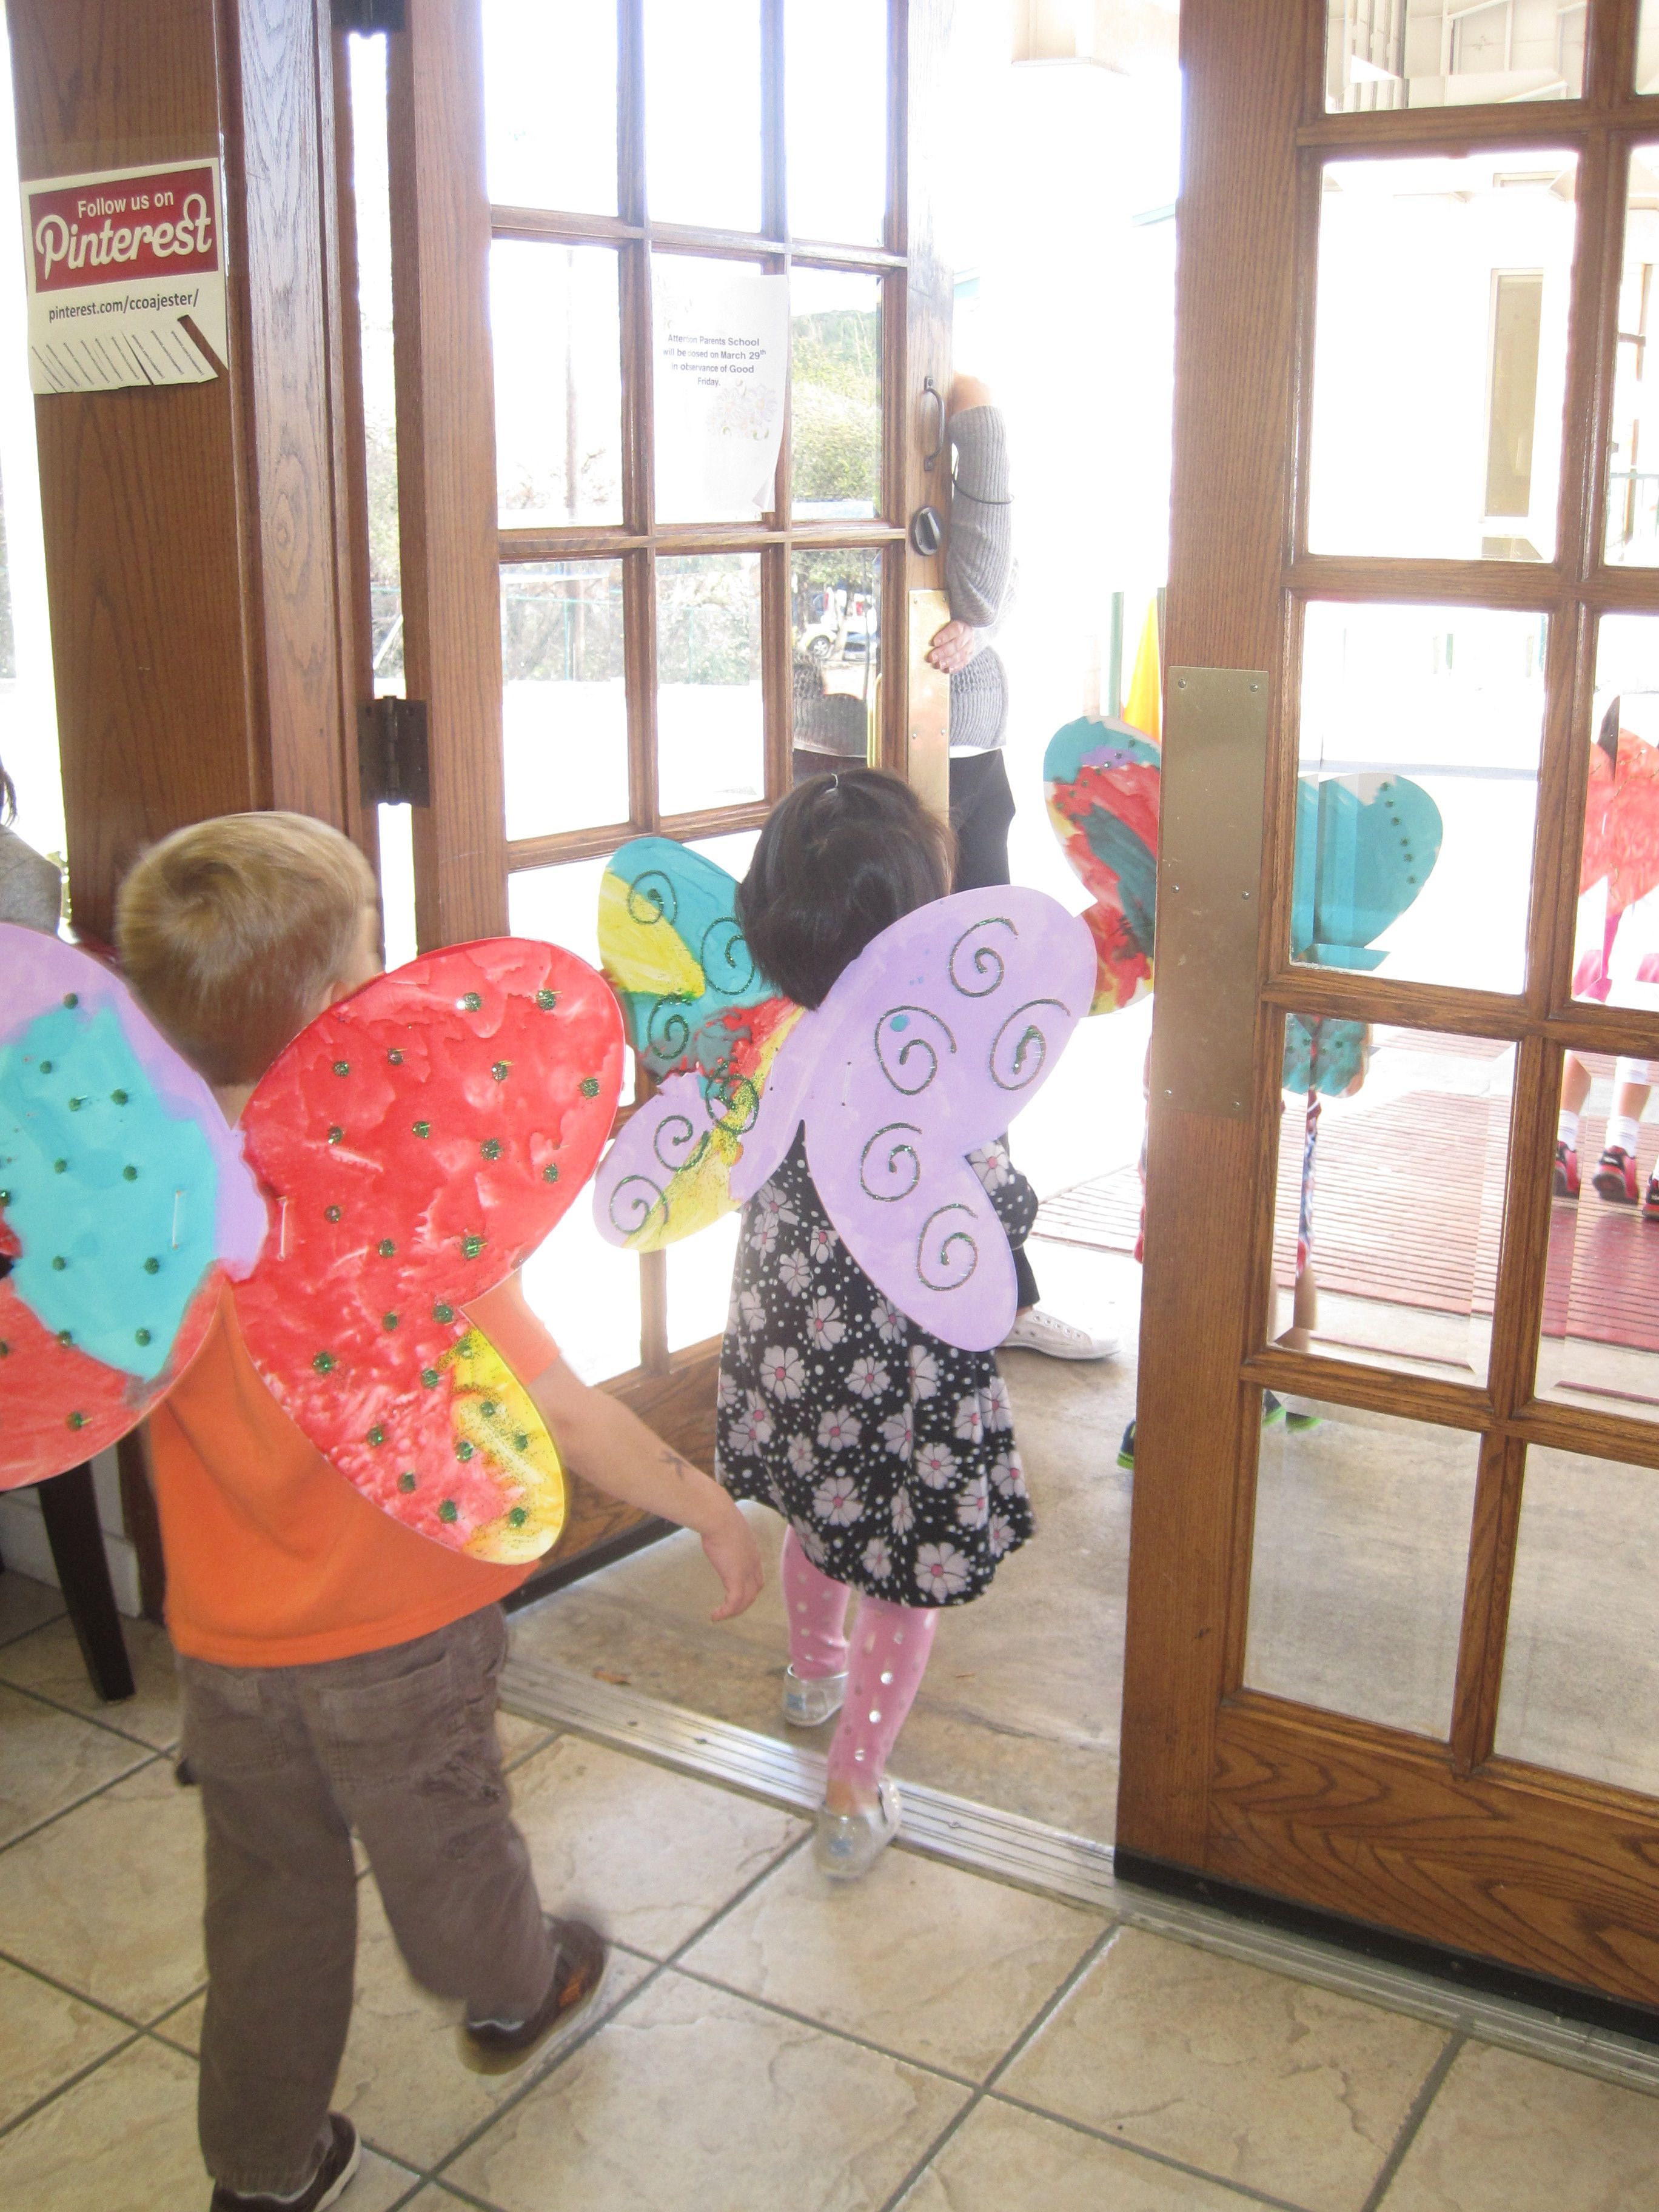 Butterfly Parade Students Decorate Wings In Classroom As An Art Activity